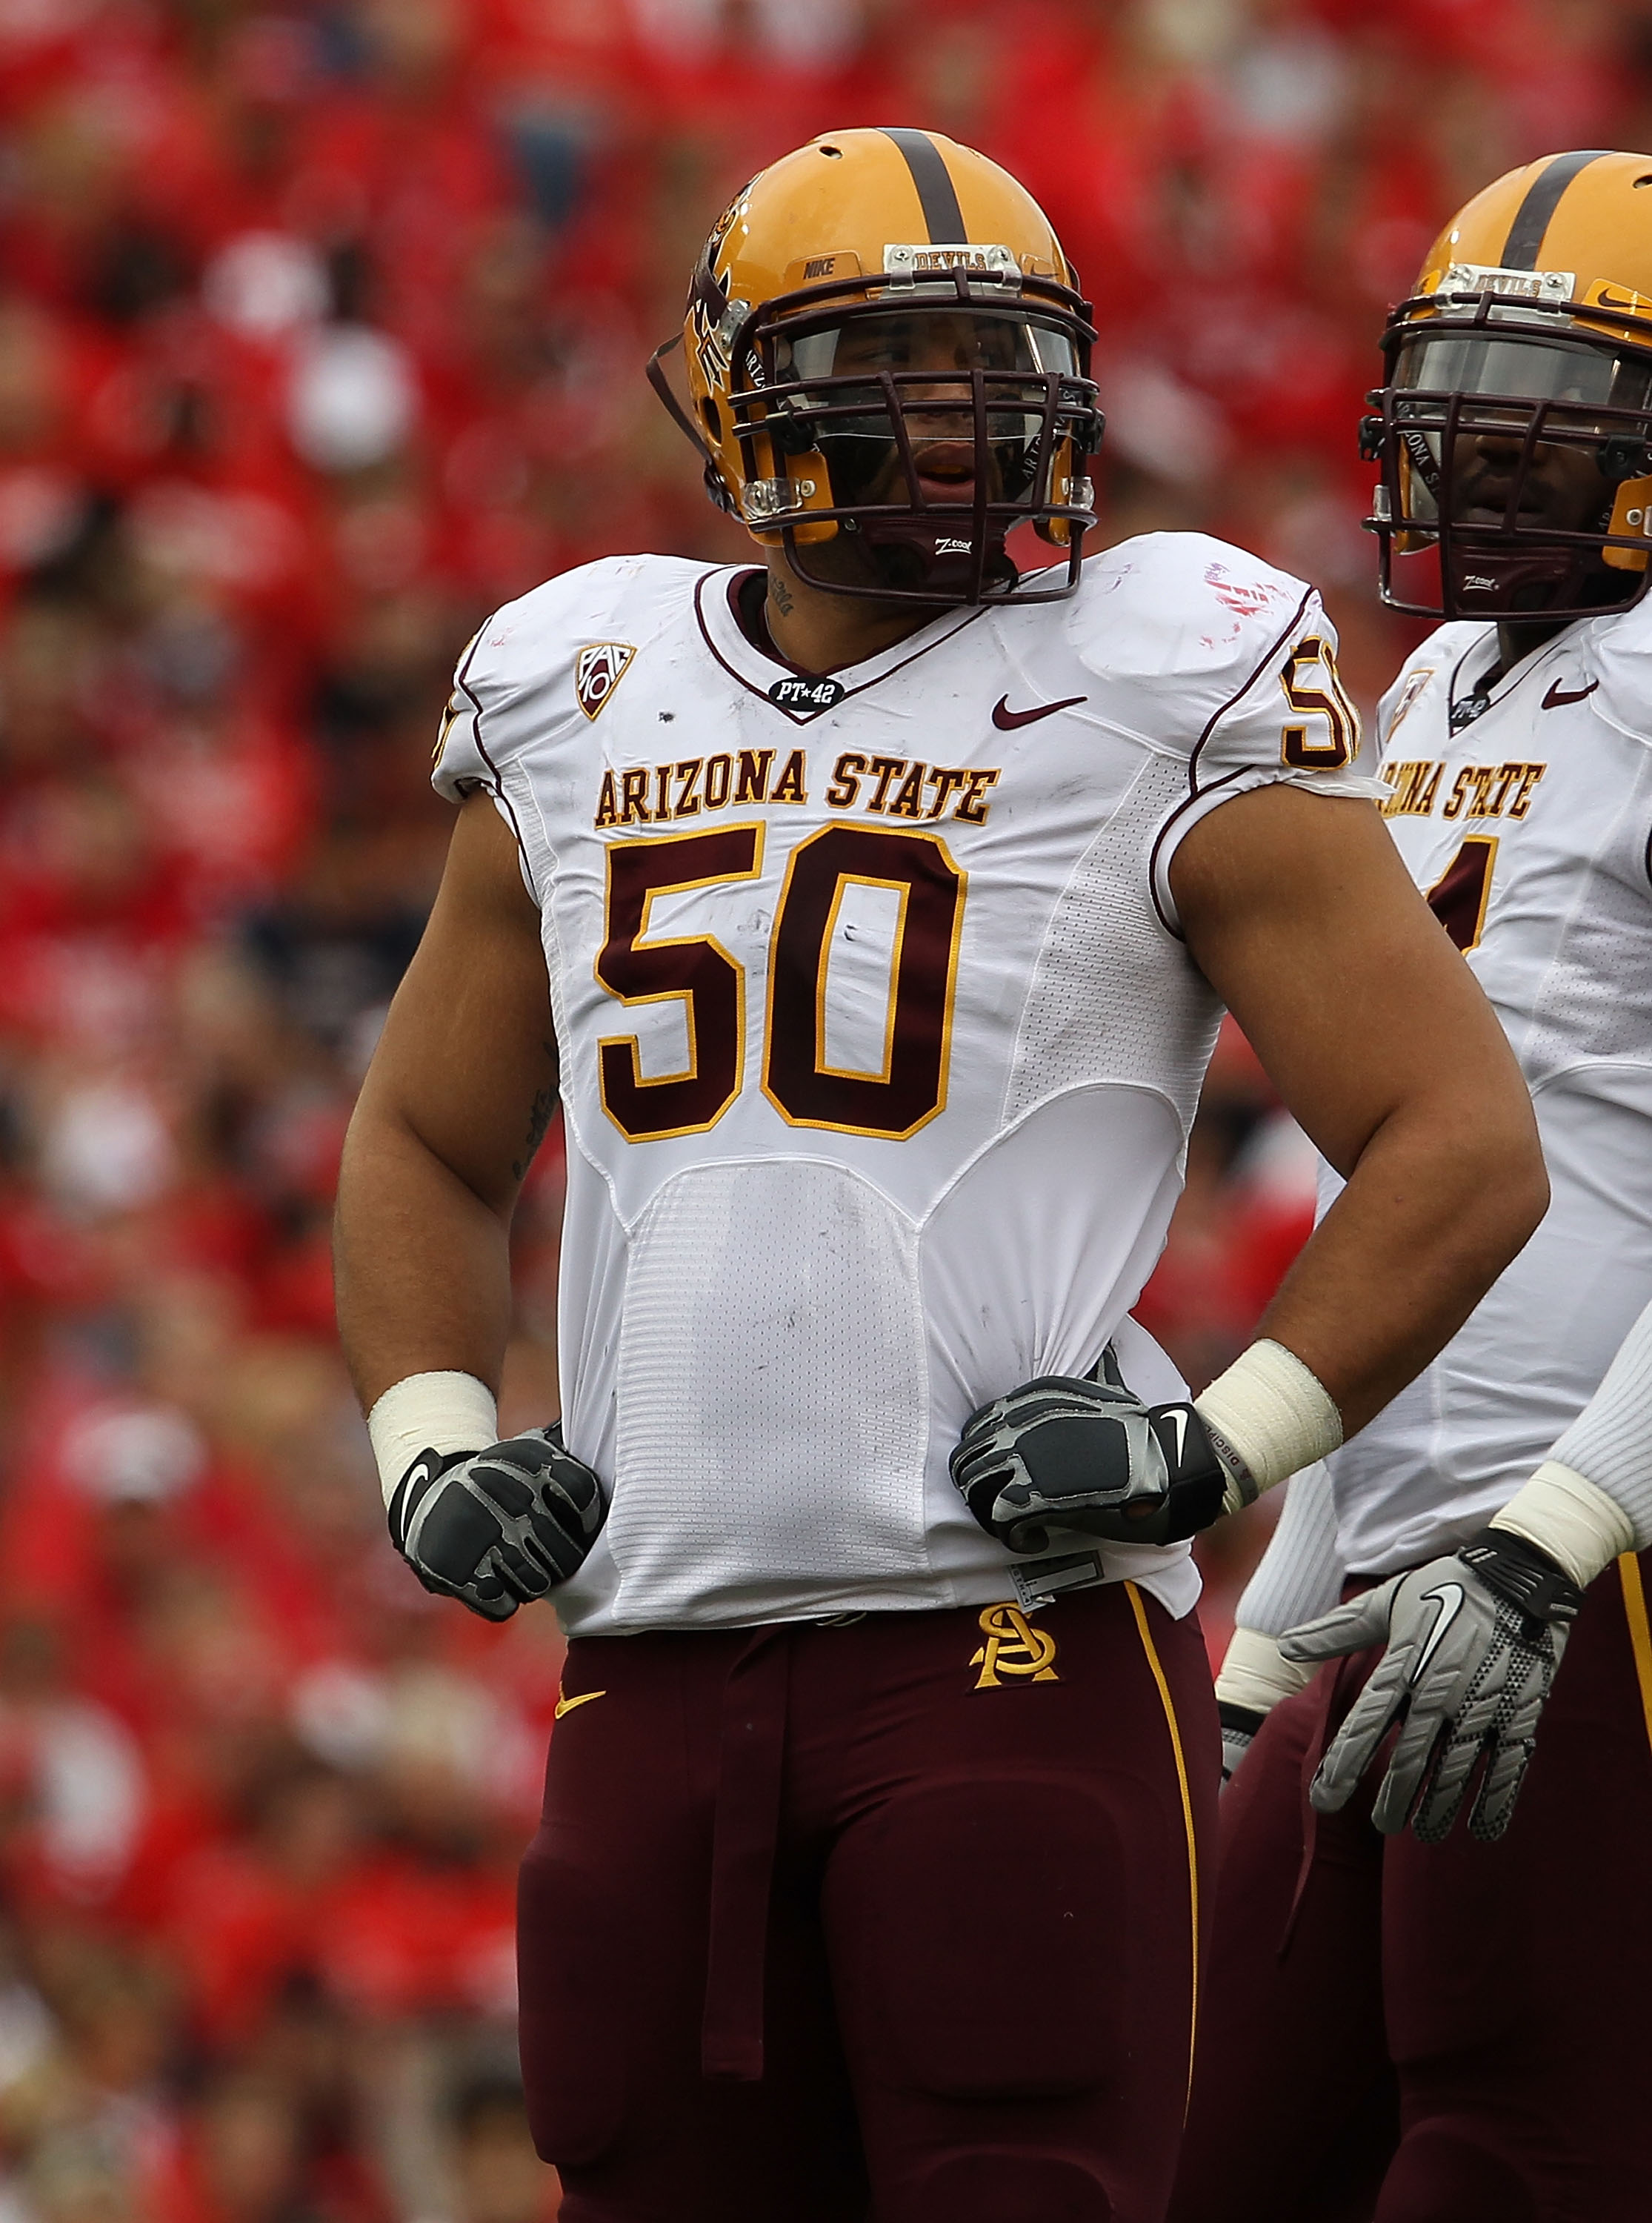 MADISON, WI - SEPTEMBER 18: Lawerence Guy #50 of the Arizona State Sun Devils waits during a time-out against the Wisconsin Badgers at Camp Randall Stadium on September 18, 2010 in Madison, Wisconsin. Wisconsin defeated Arizona State 20-19.  (Photo by Jon